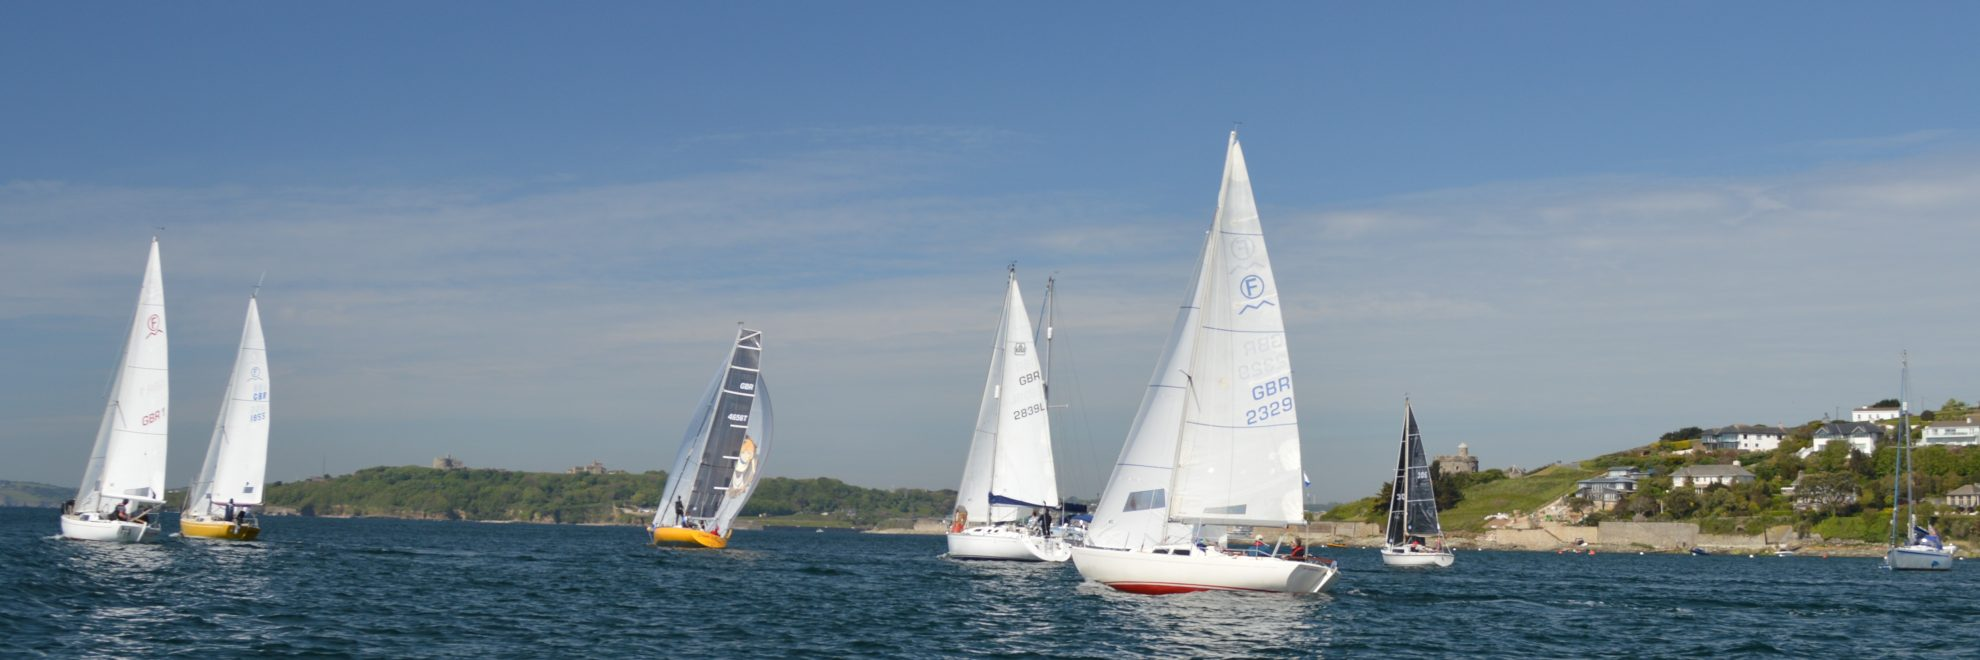 https://www.stmawessailing.co.uk/wp-content/uploads/2019/02/DSC_2857-1.jpg